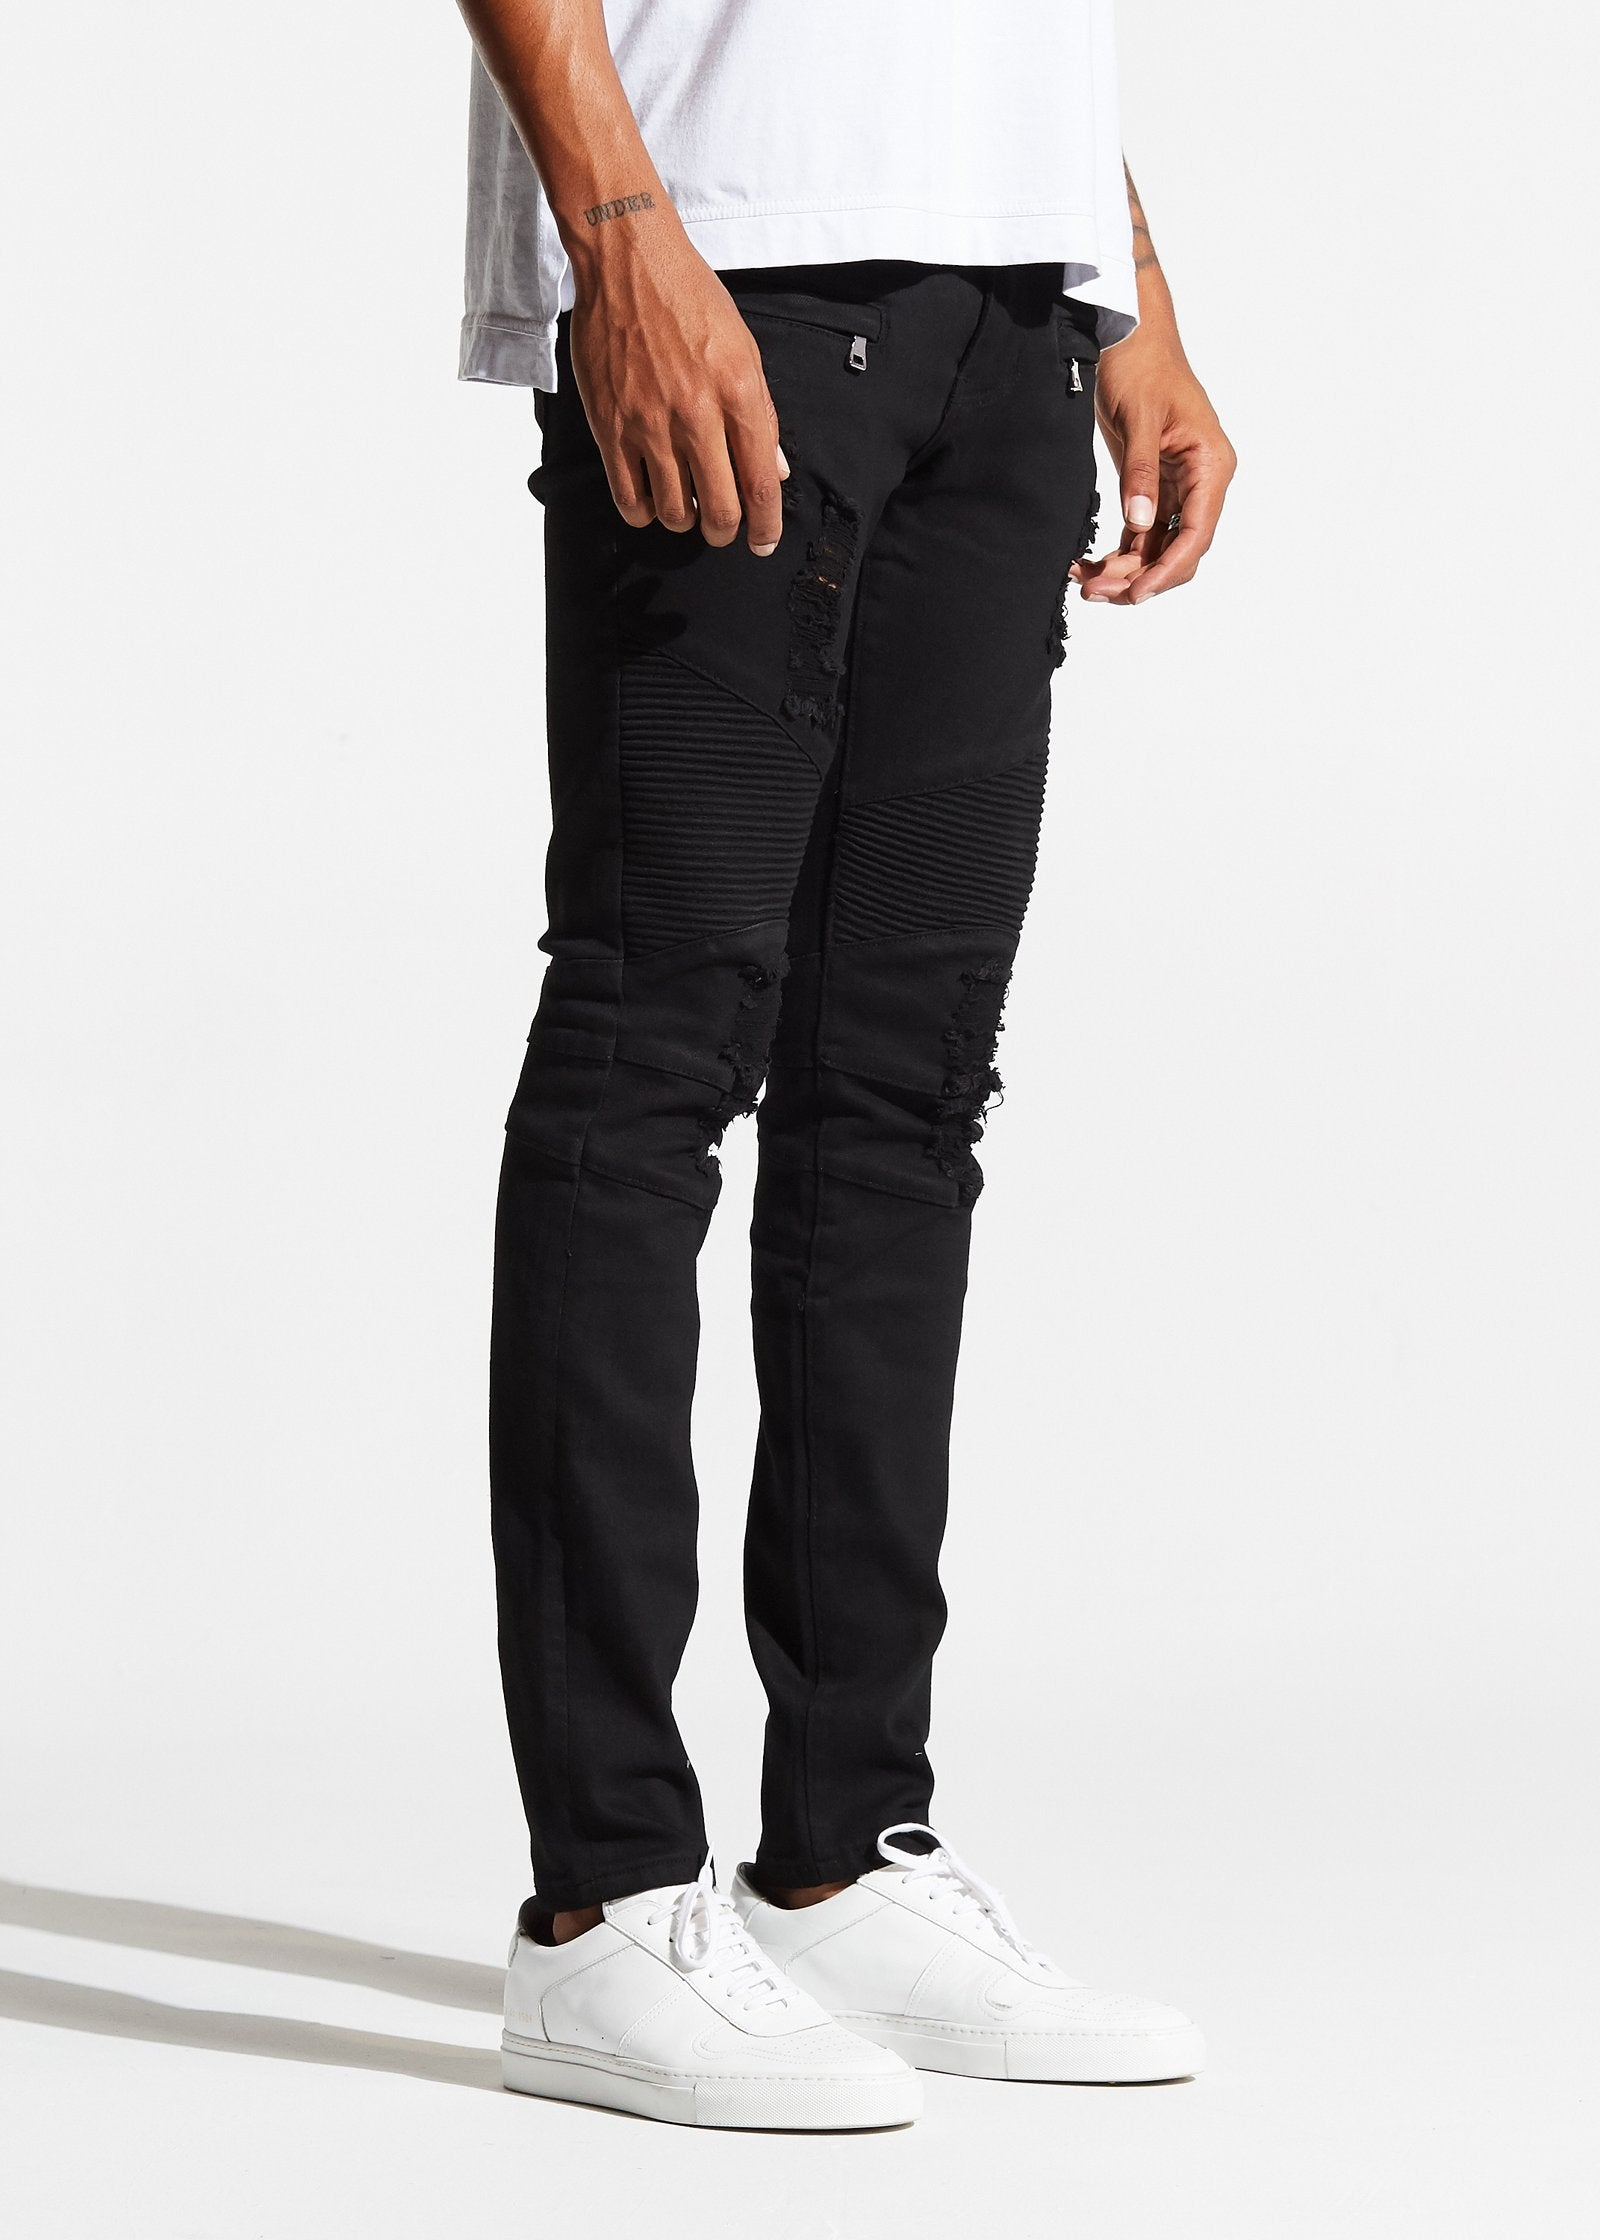 Testarossa Biker Denim (Black)